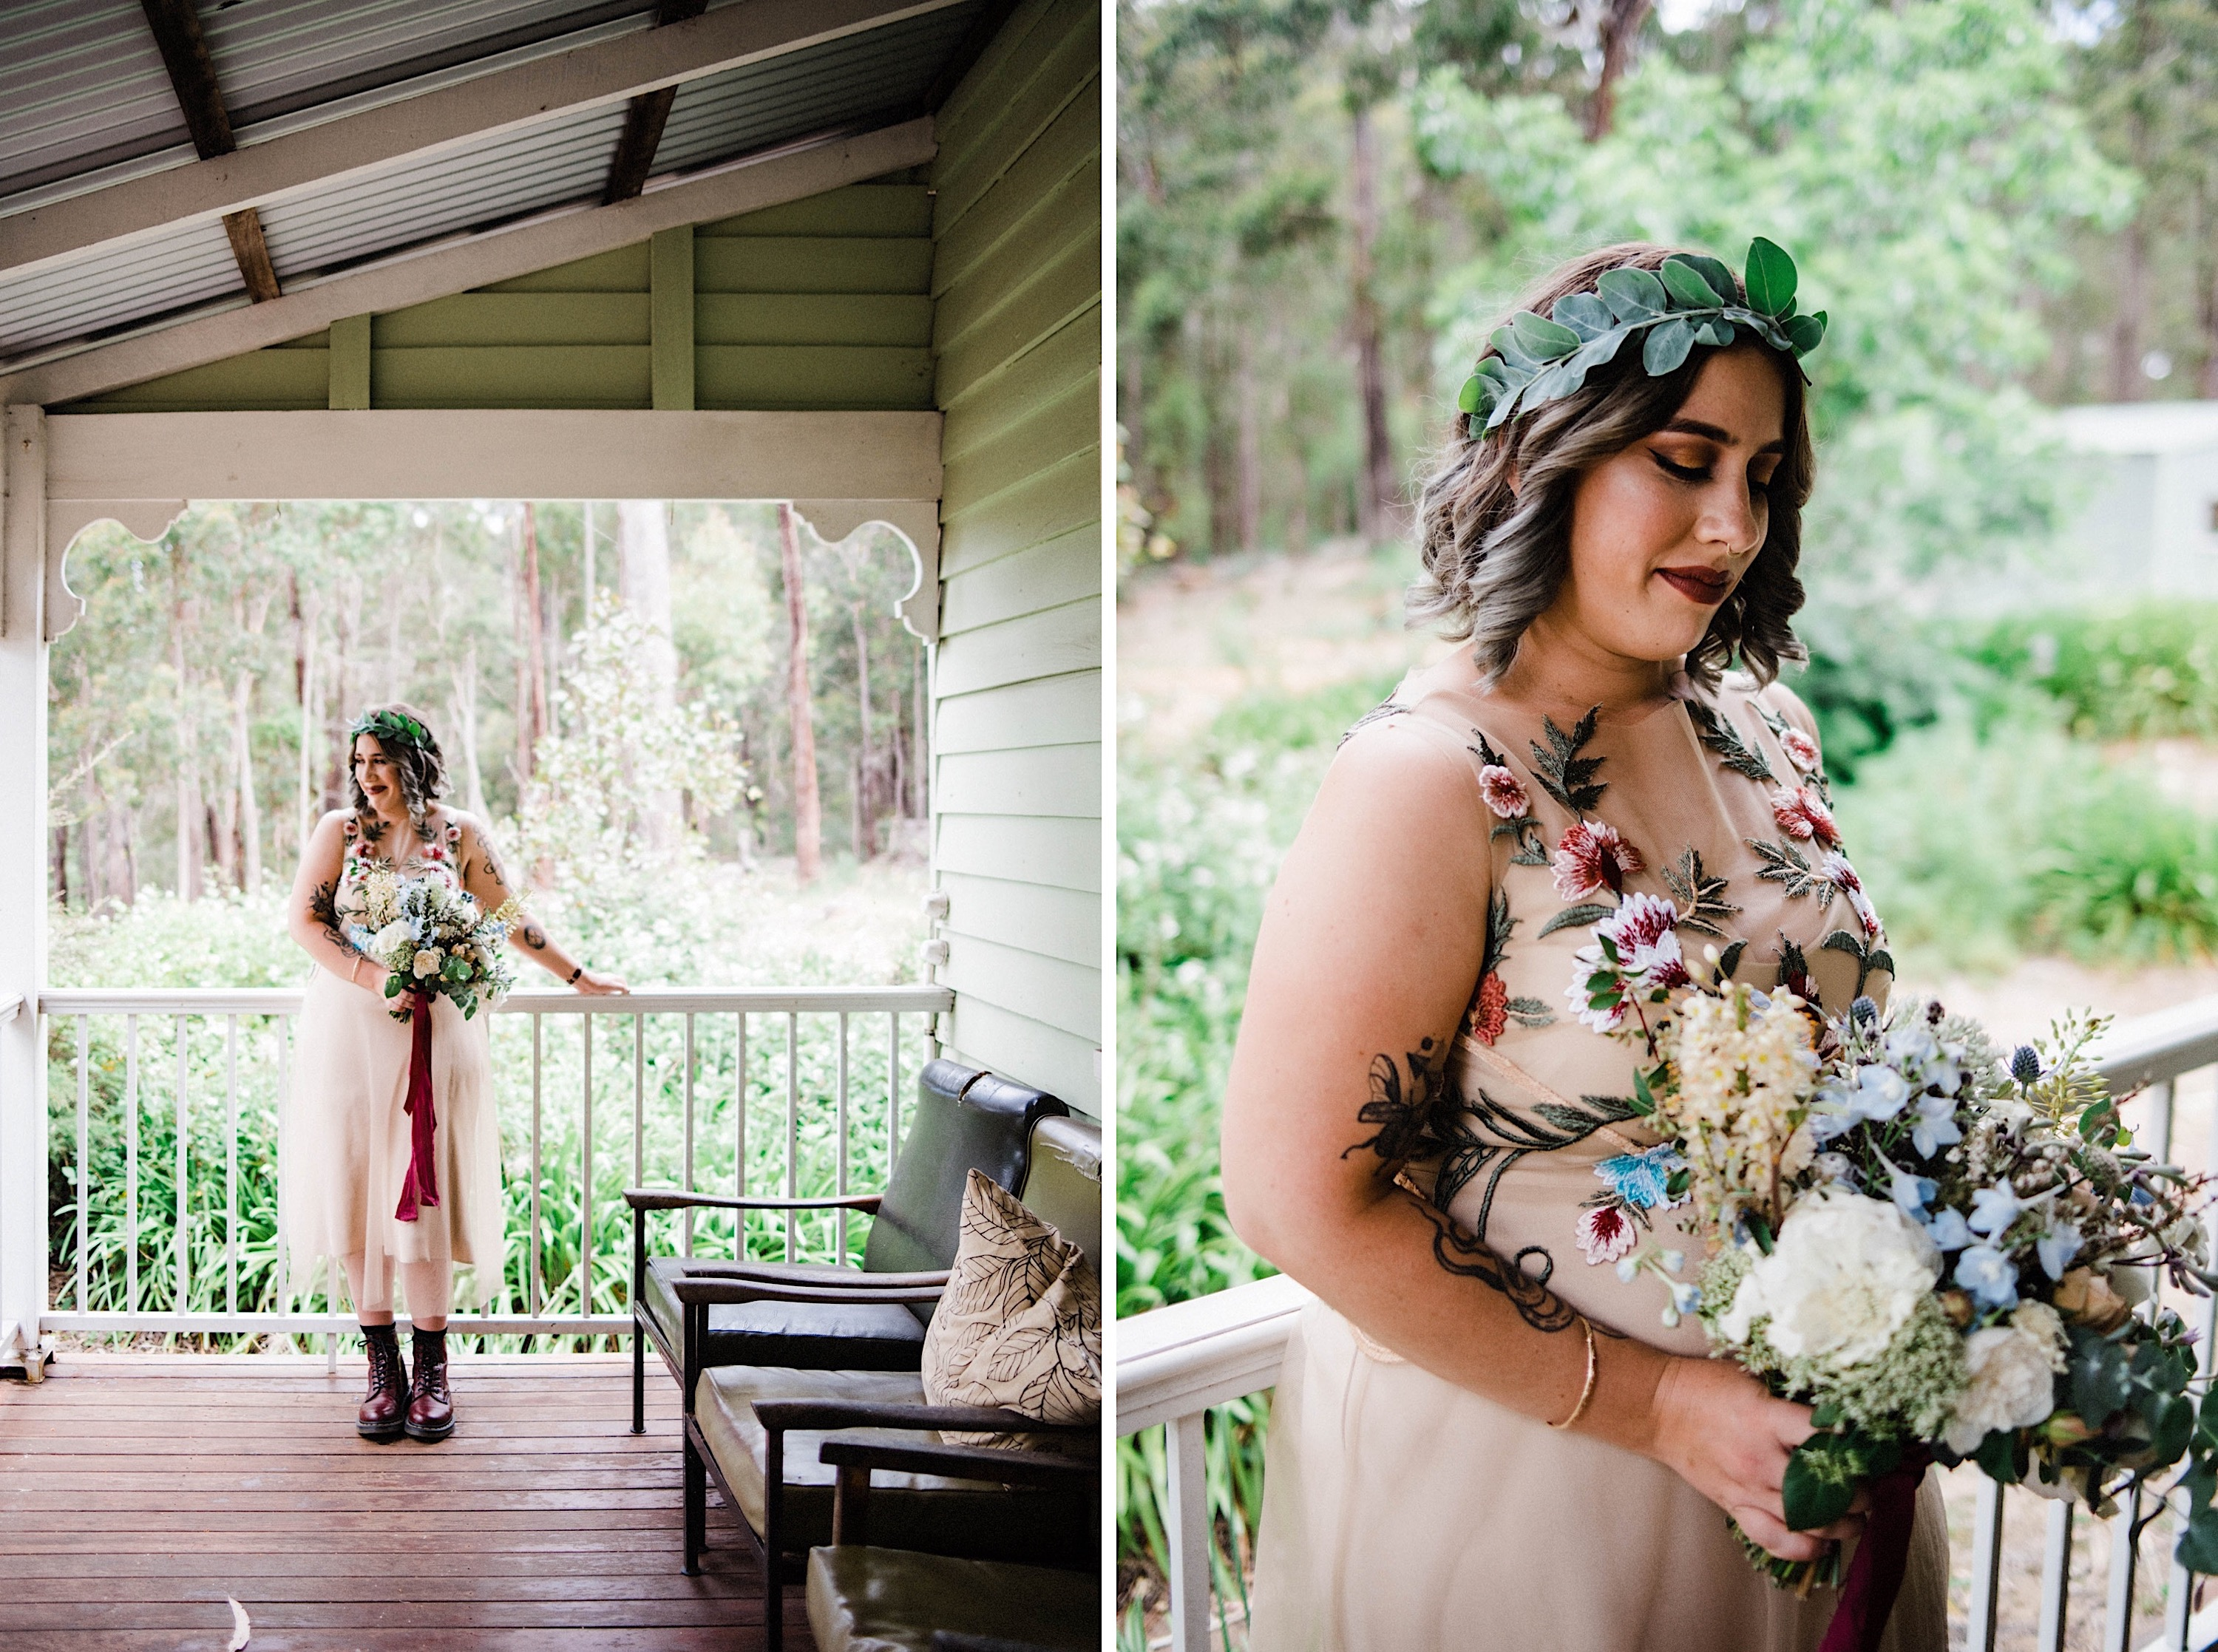 Photos of the bride once she's finished getting ready for her wedding, wearing Dr Marten boots and a custom embroidered dress.